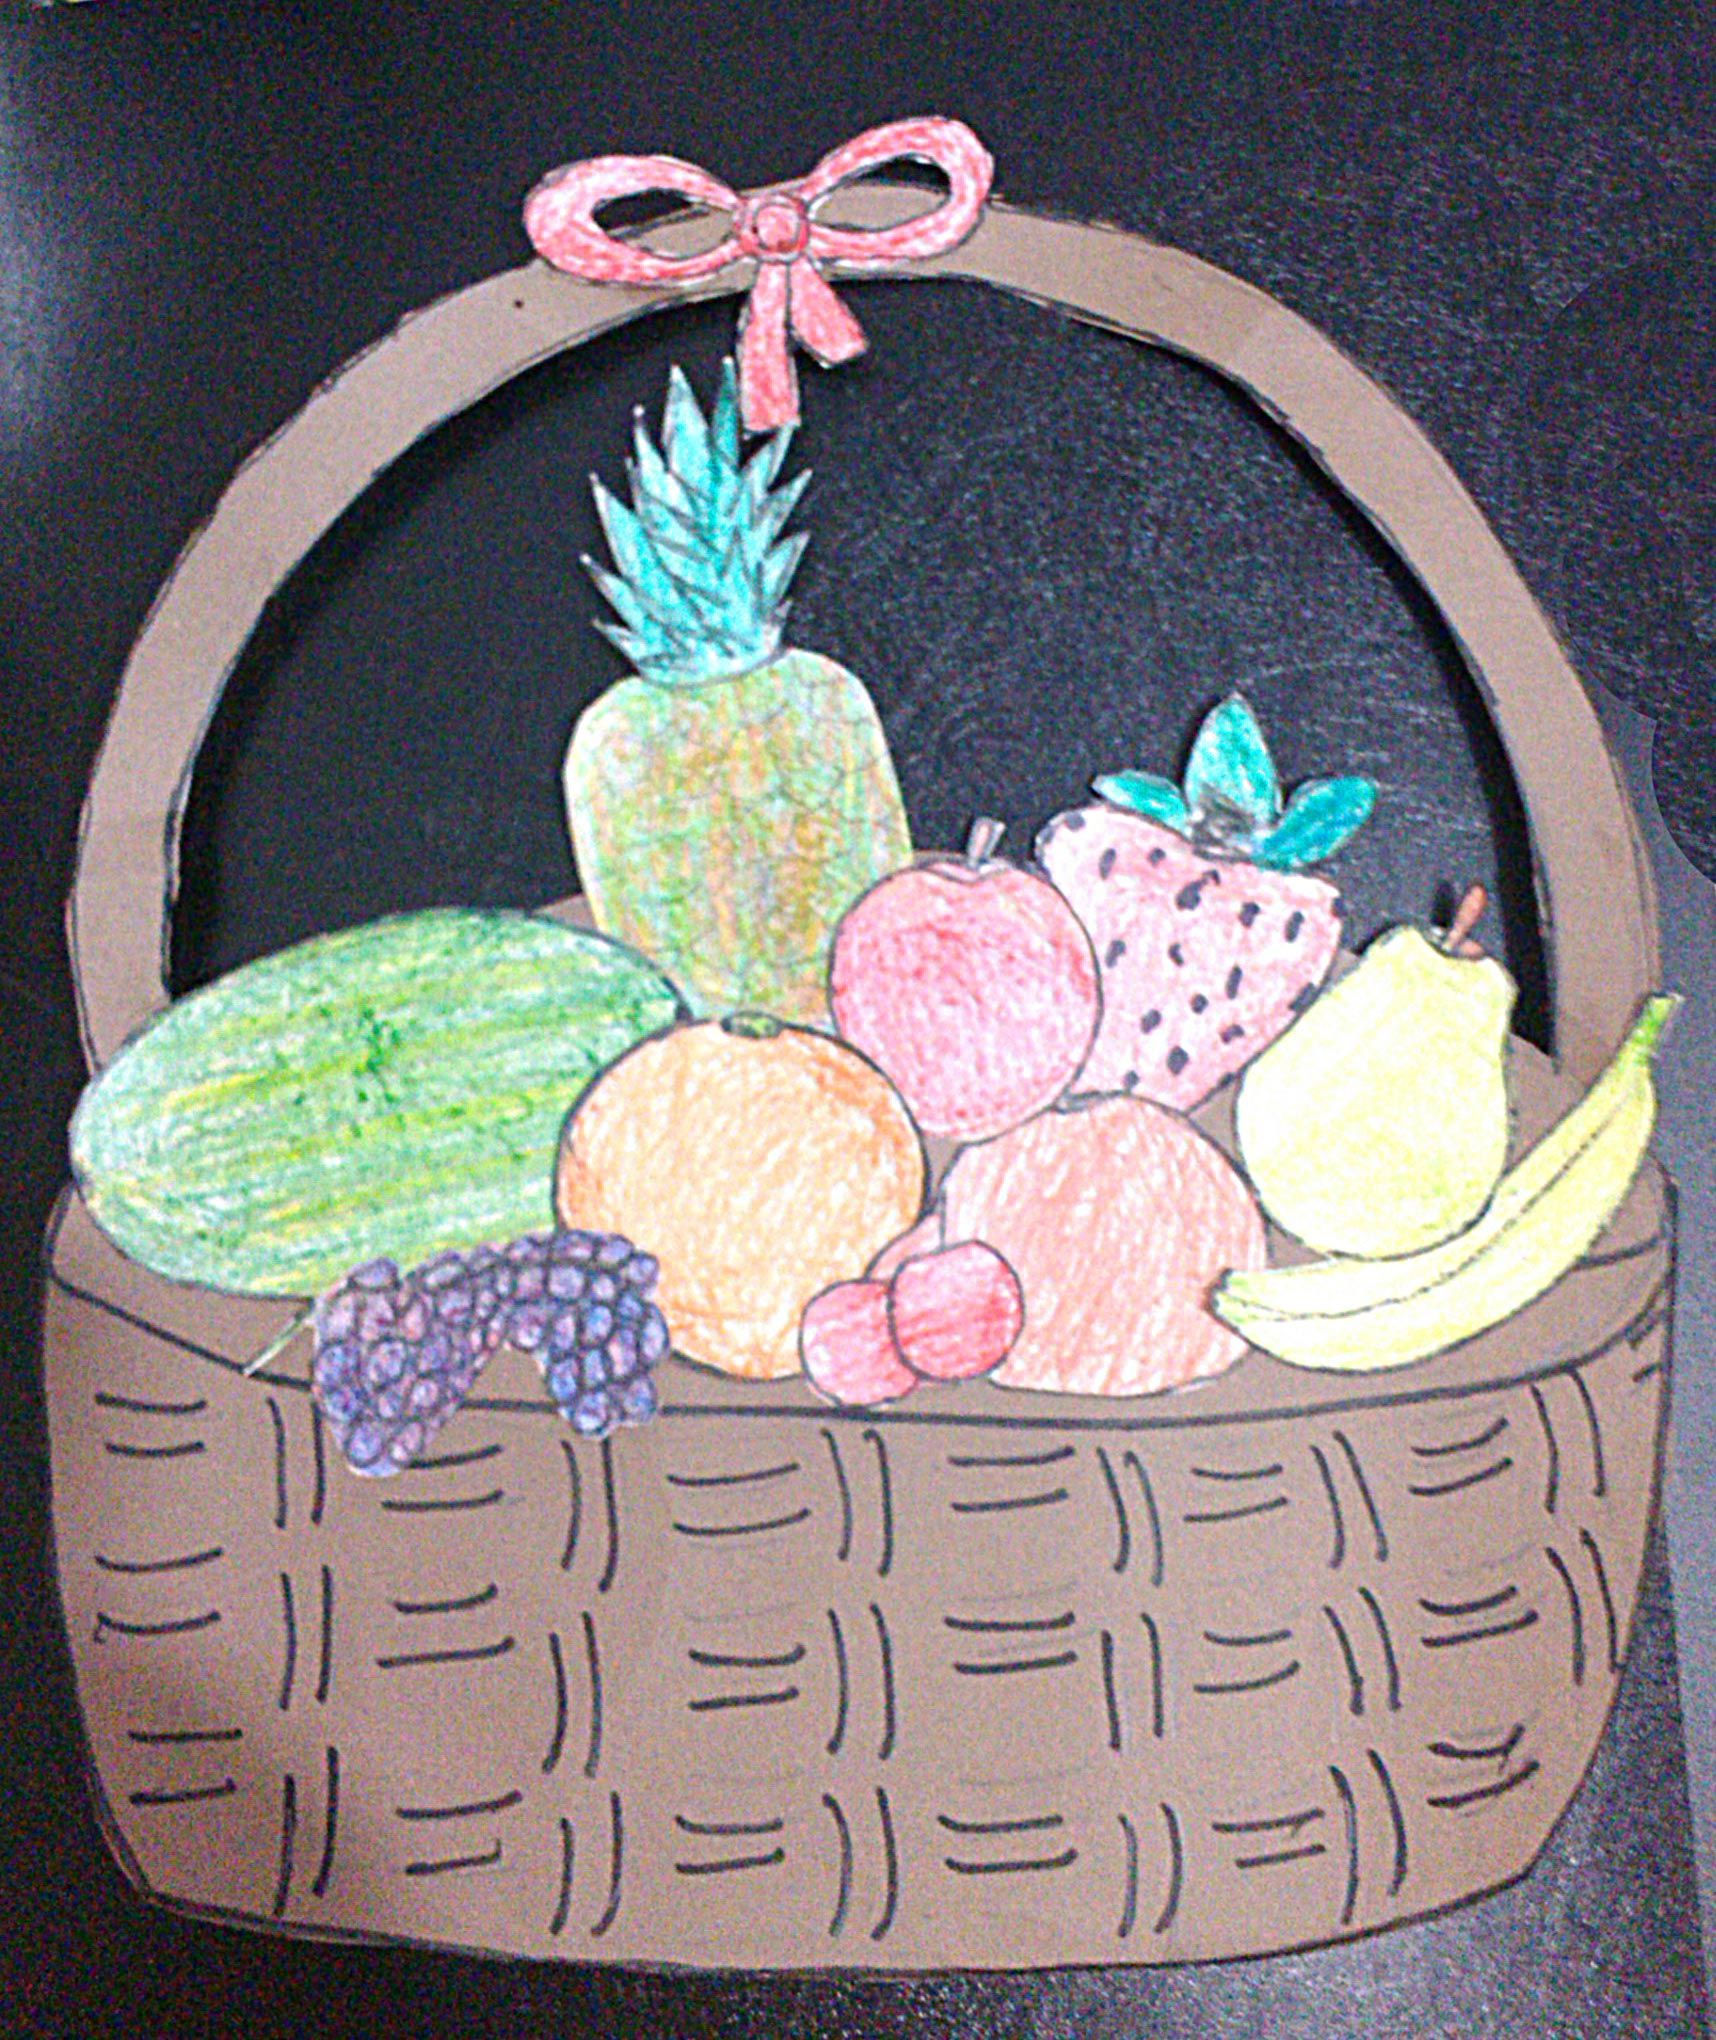 A Fruits Basket On Fruits Day